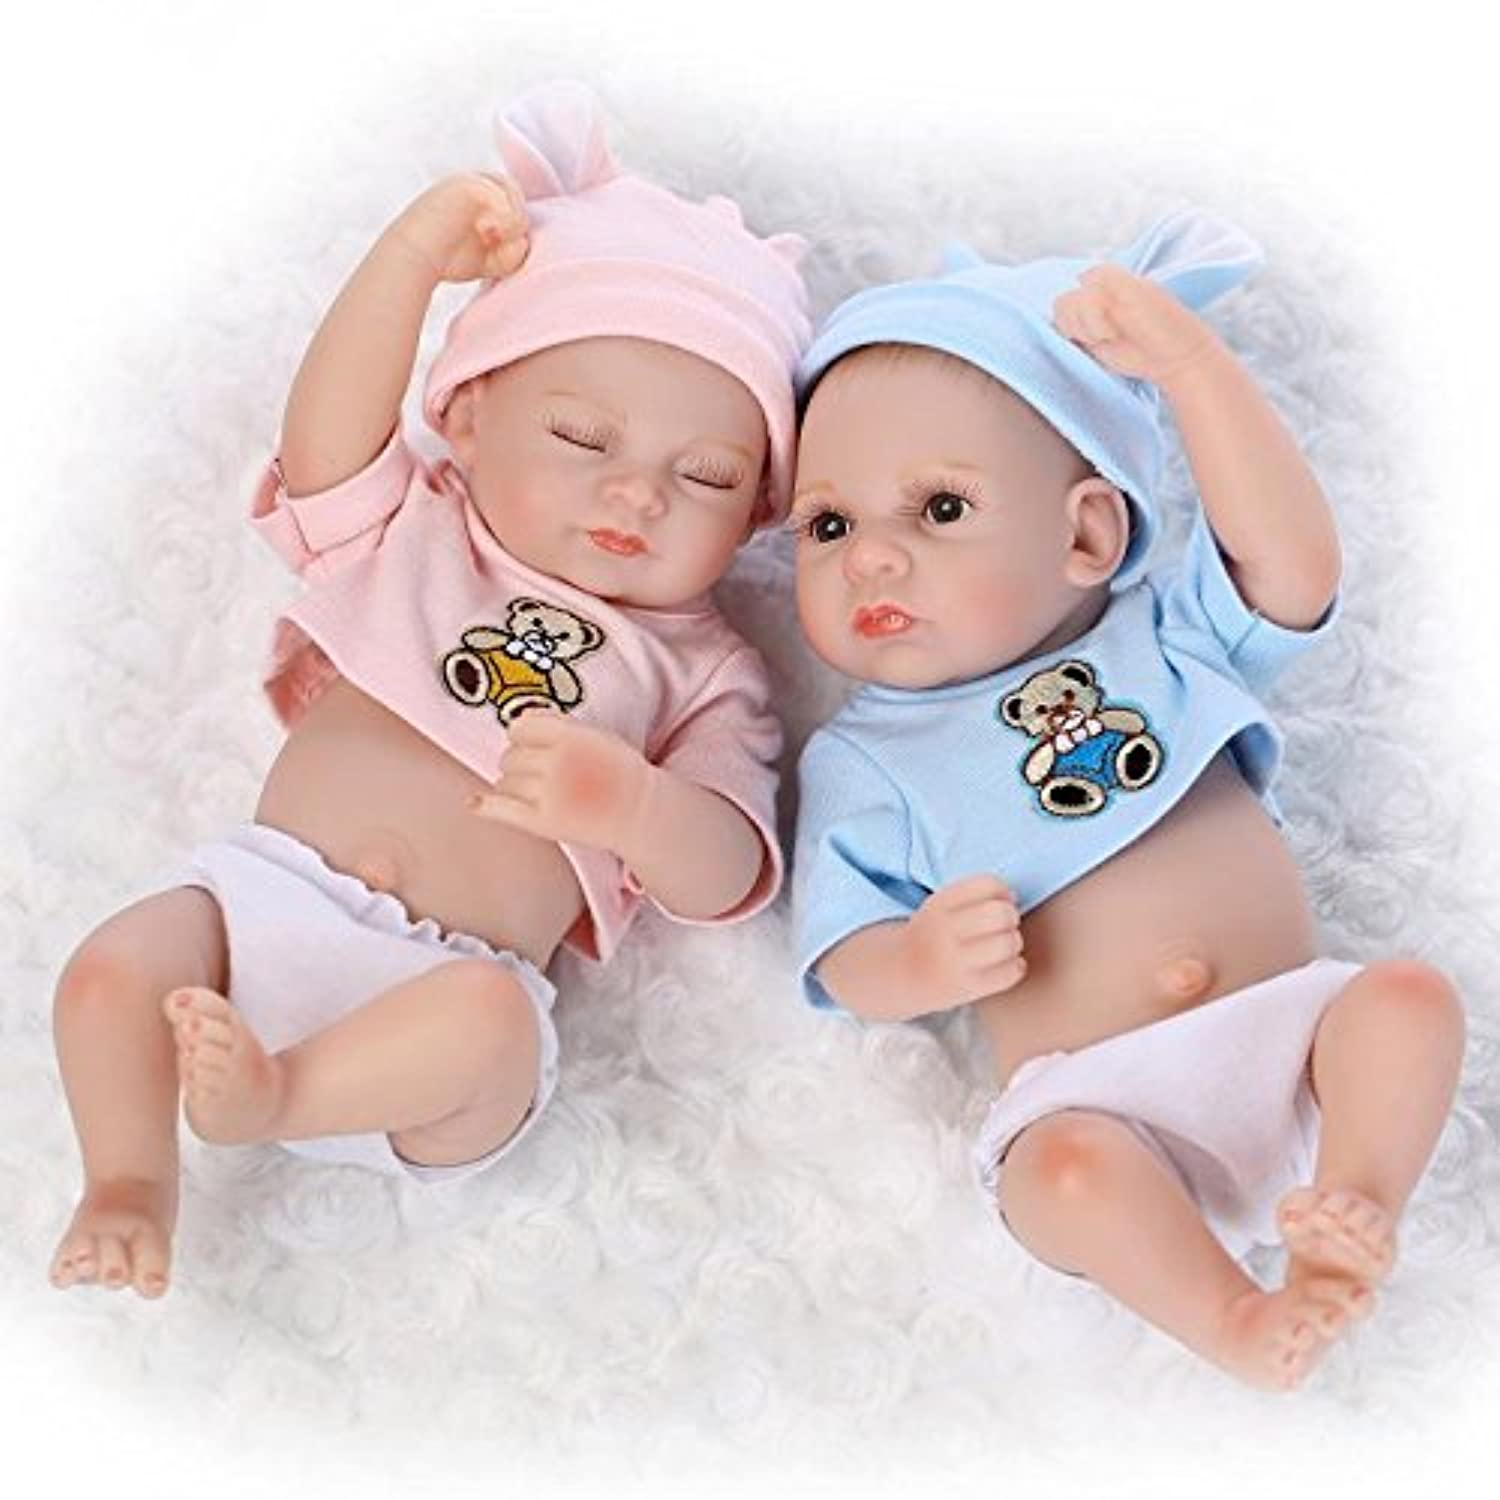 Lifelike Full Silicone Doll Set Reborn Baby Boy and Girl 25cm Twins Waterproof Home Decorations Kids Toys Collects